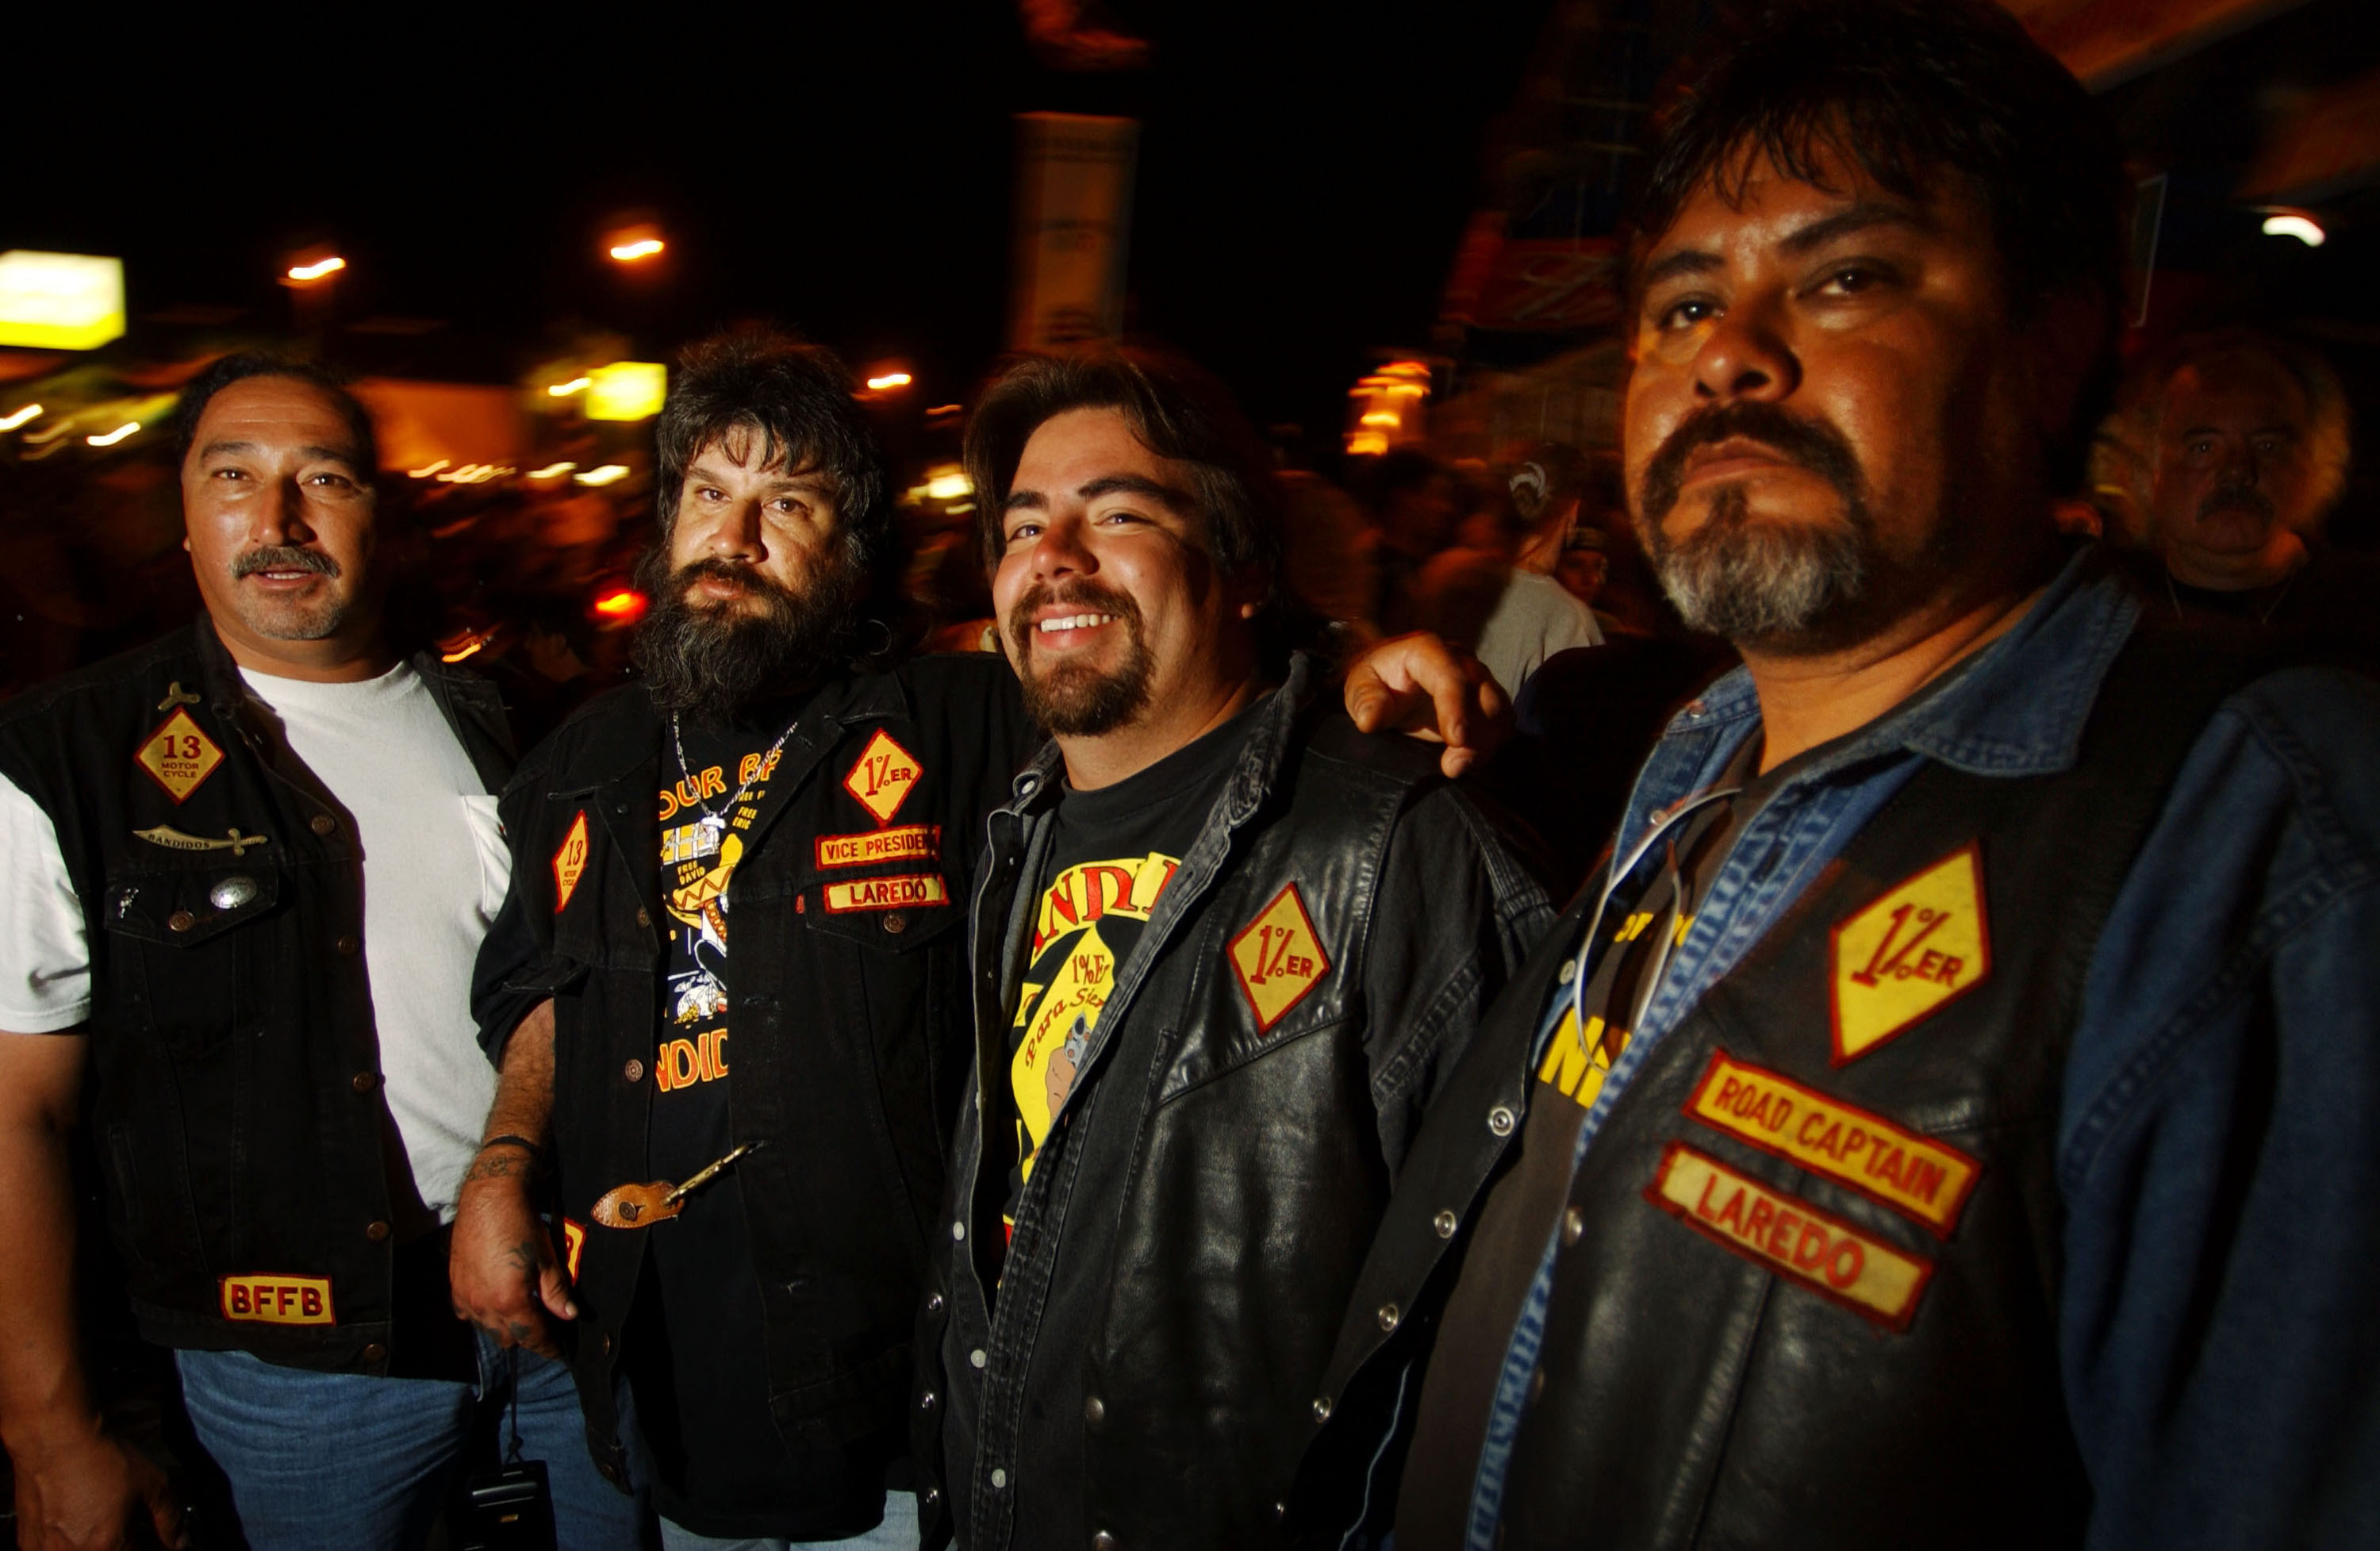 Can Women Join Motorcycle Clubs Like The Cossacks Or Bandidos? It's